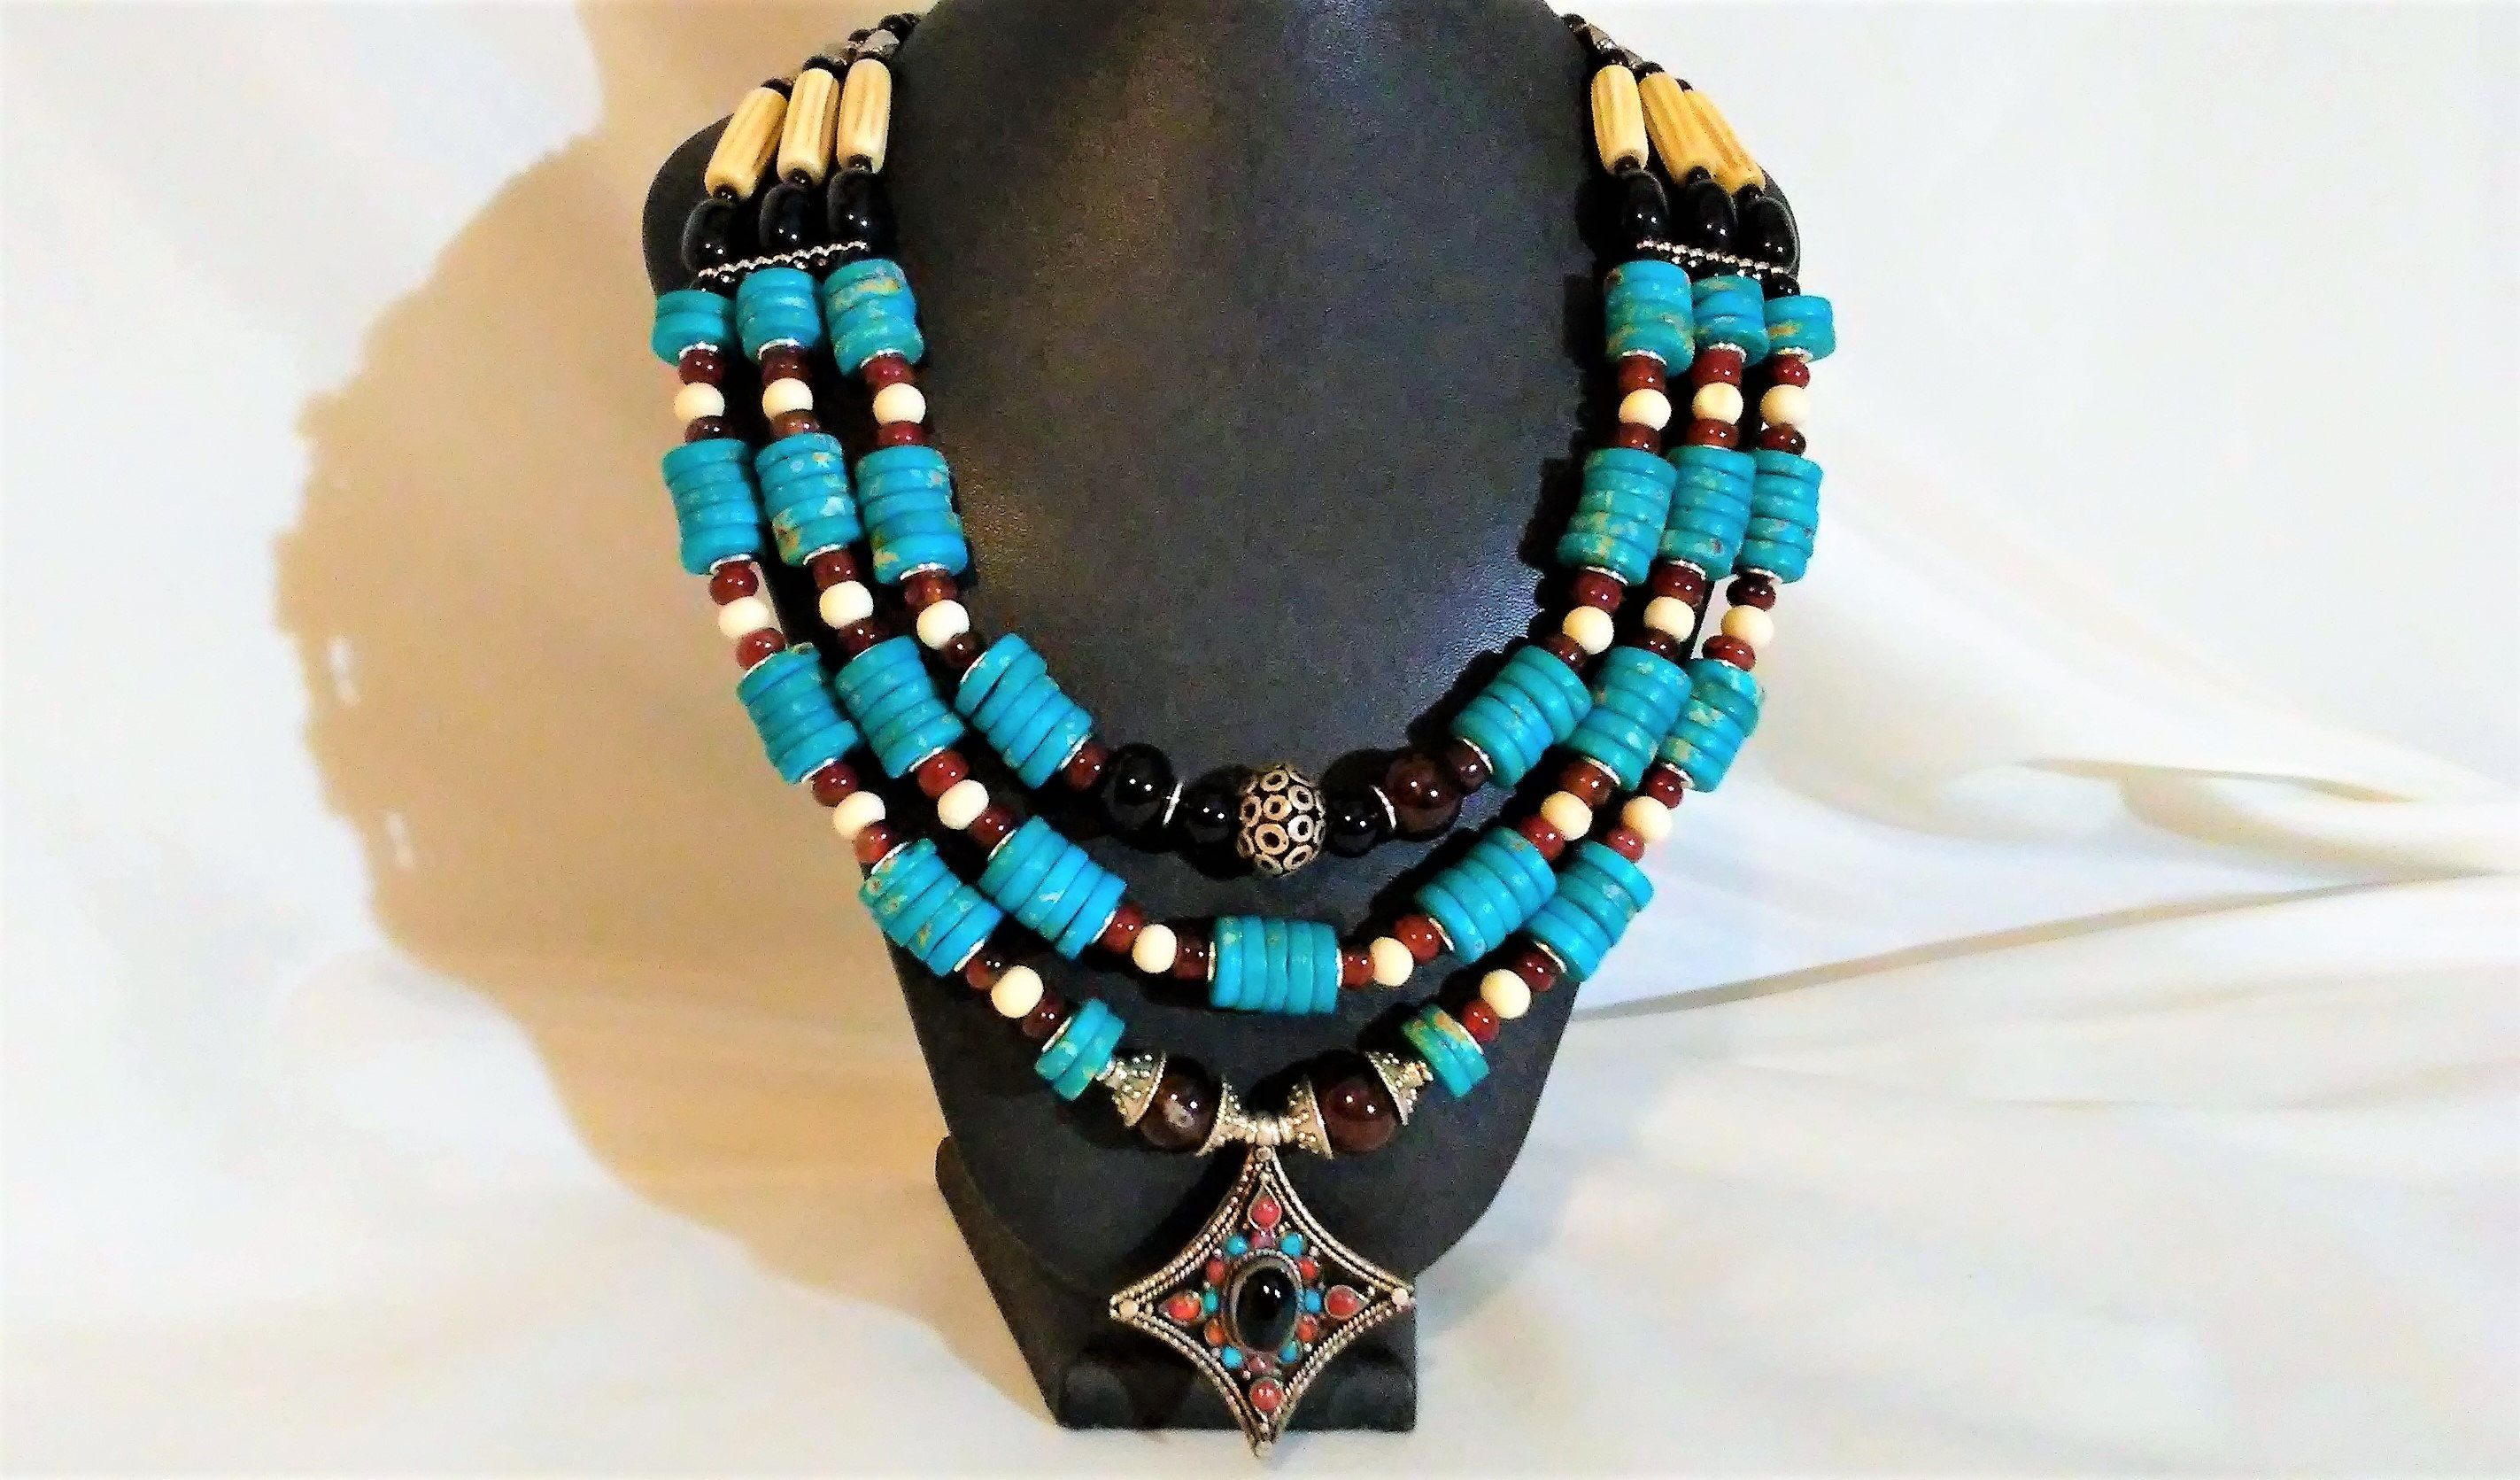 Tribal Necklace Tribal Jewelry Chunky Necklace Necklace for Women Large Hippie Necklace Blue Bead Necklace Blue Statement Necklace